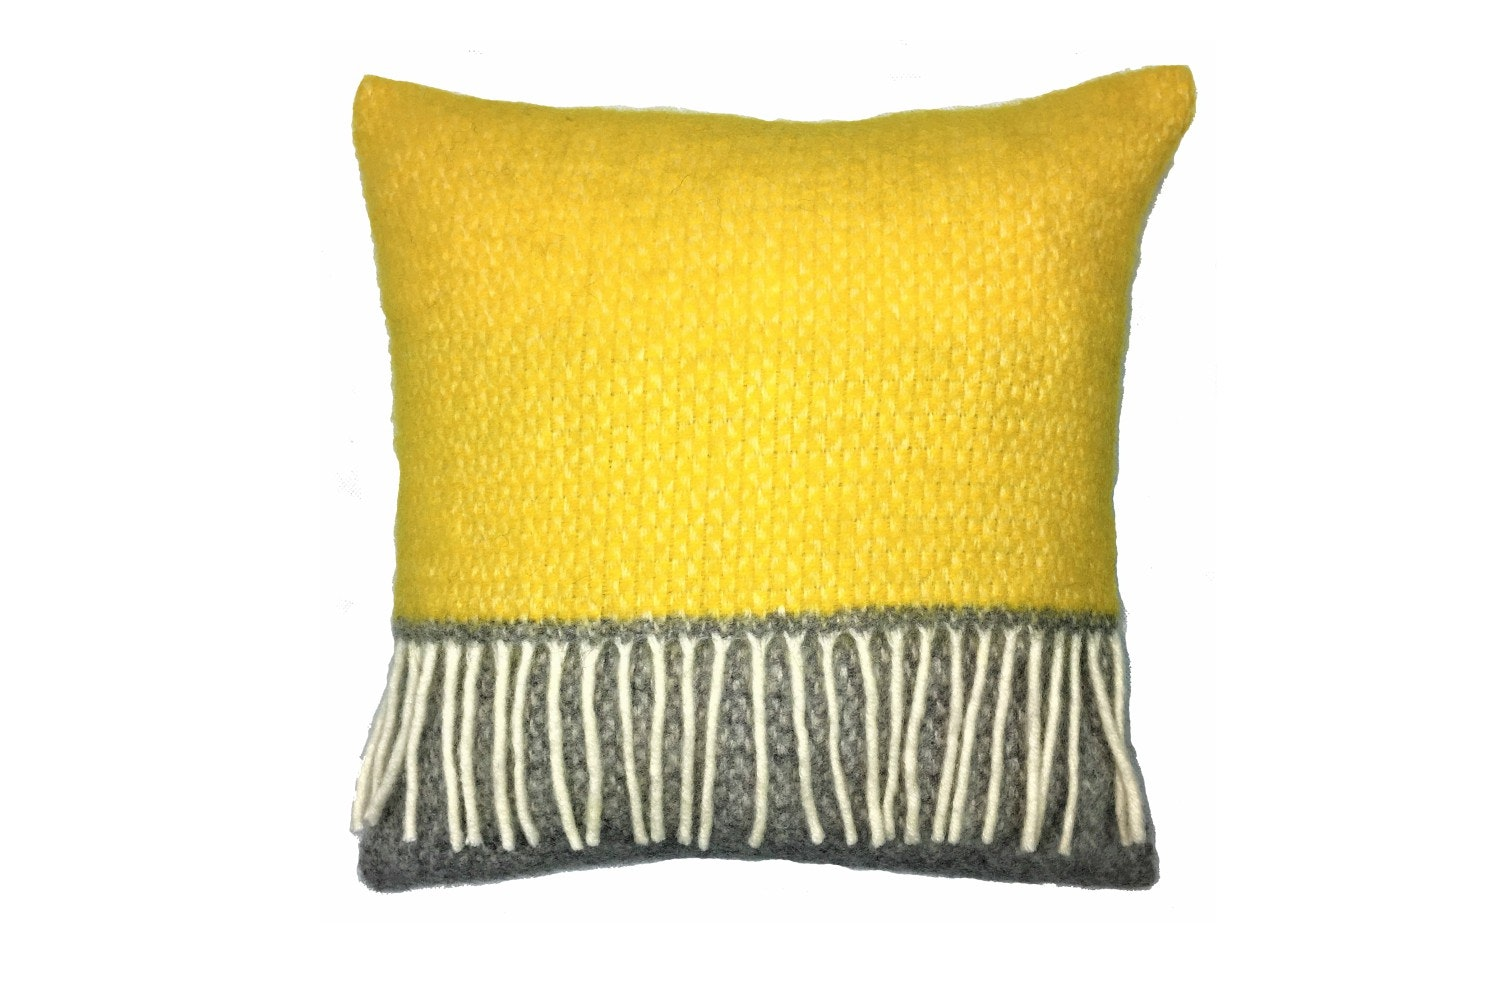 Illusion Panel Cushion | Grey & Yellow